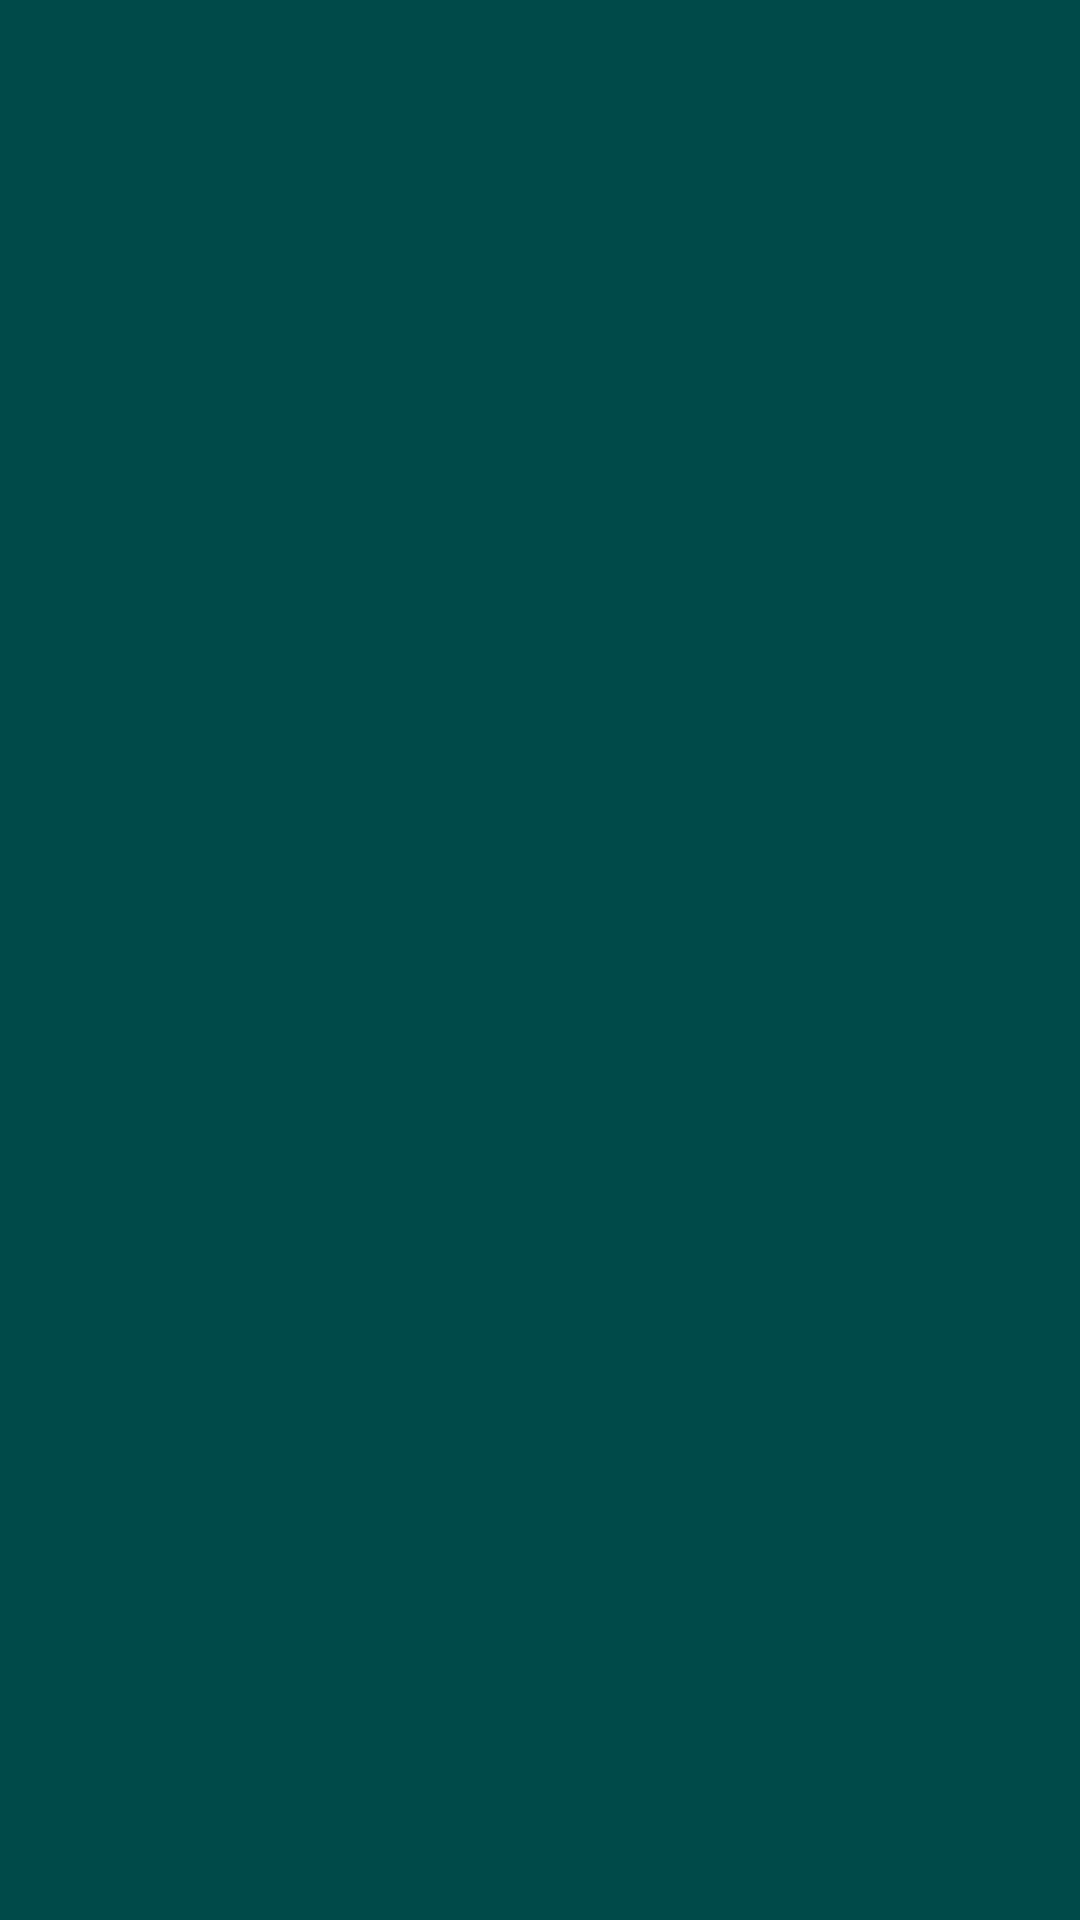 1080x1920 Deep Jungle Green Solid Color Background